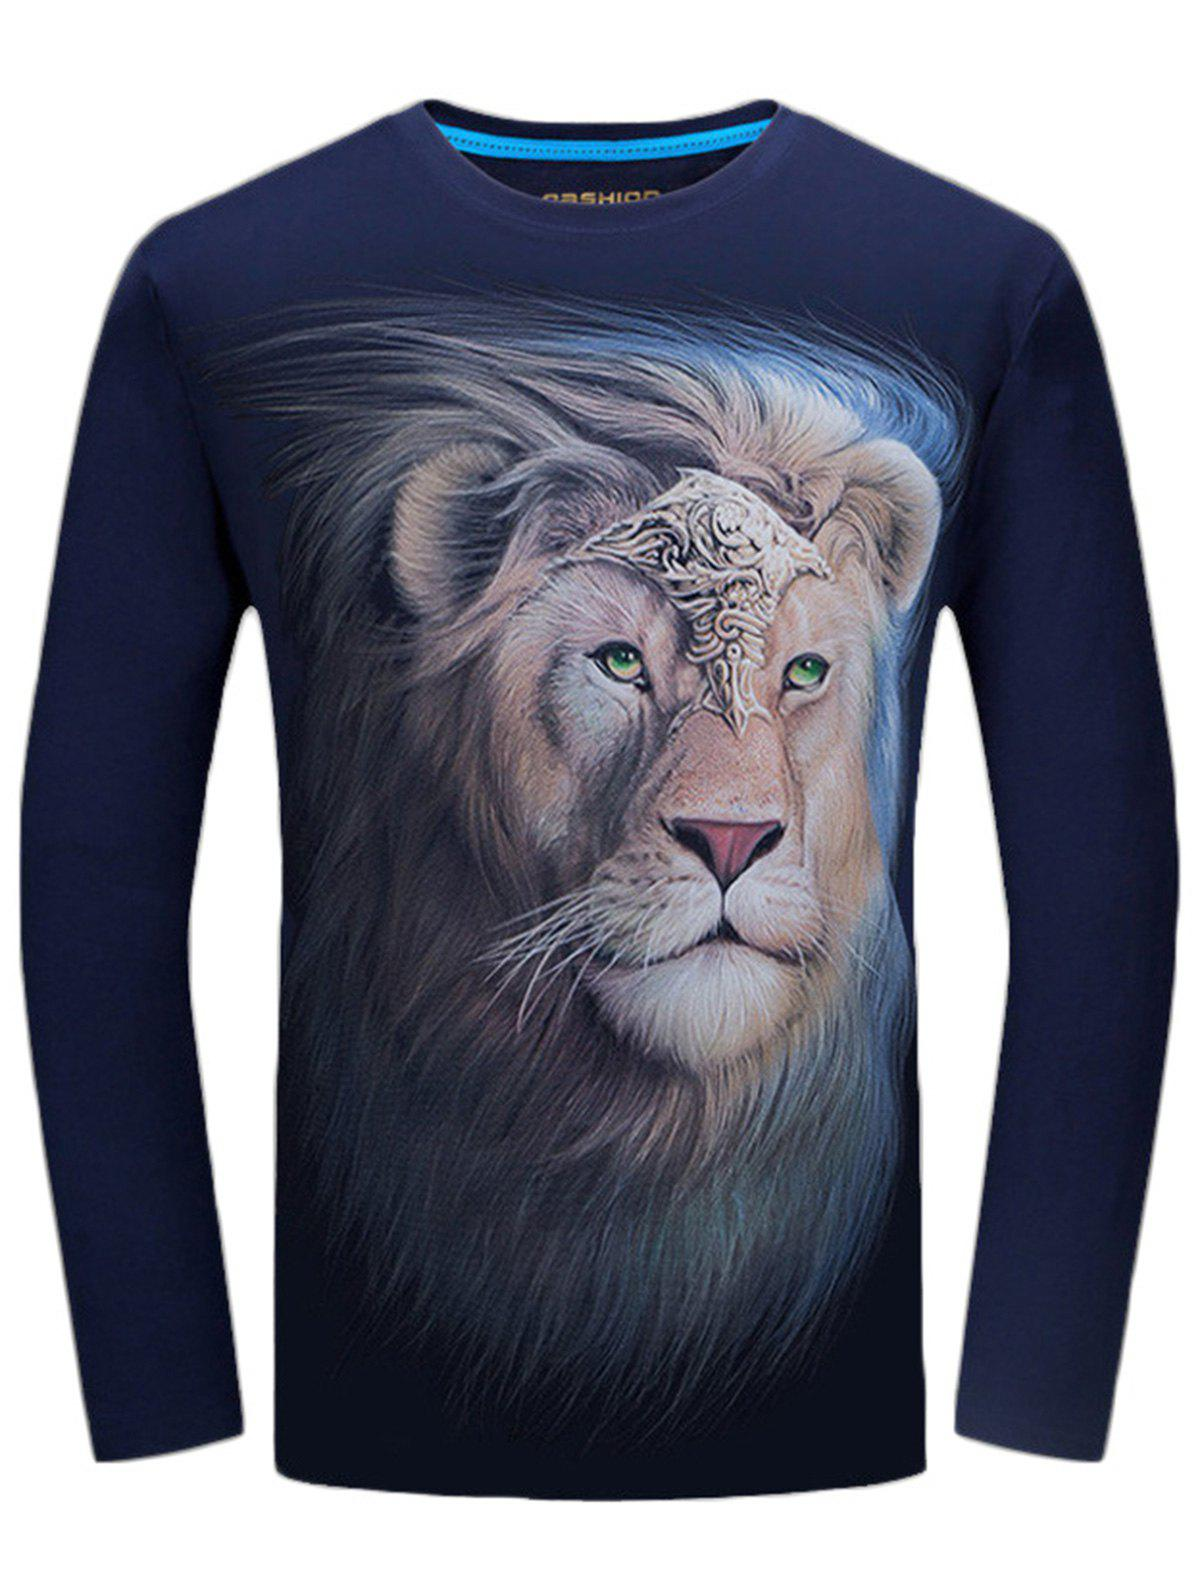 Long Sleeve Crew Neck Lion King Print Tee - MIDNIGHT BLUE 5XL